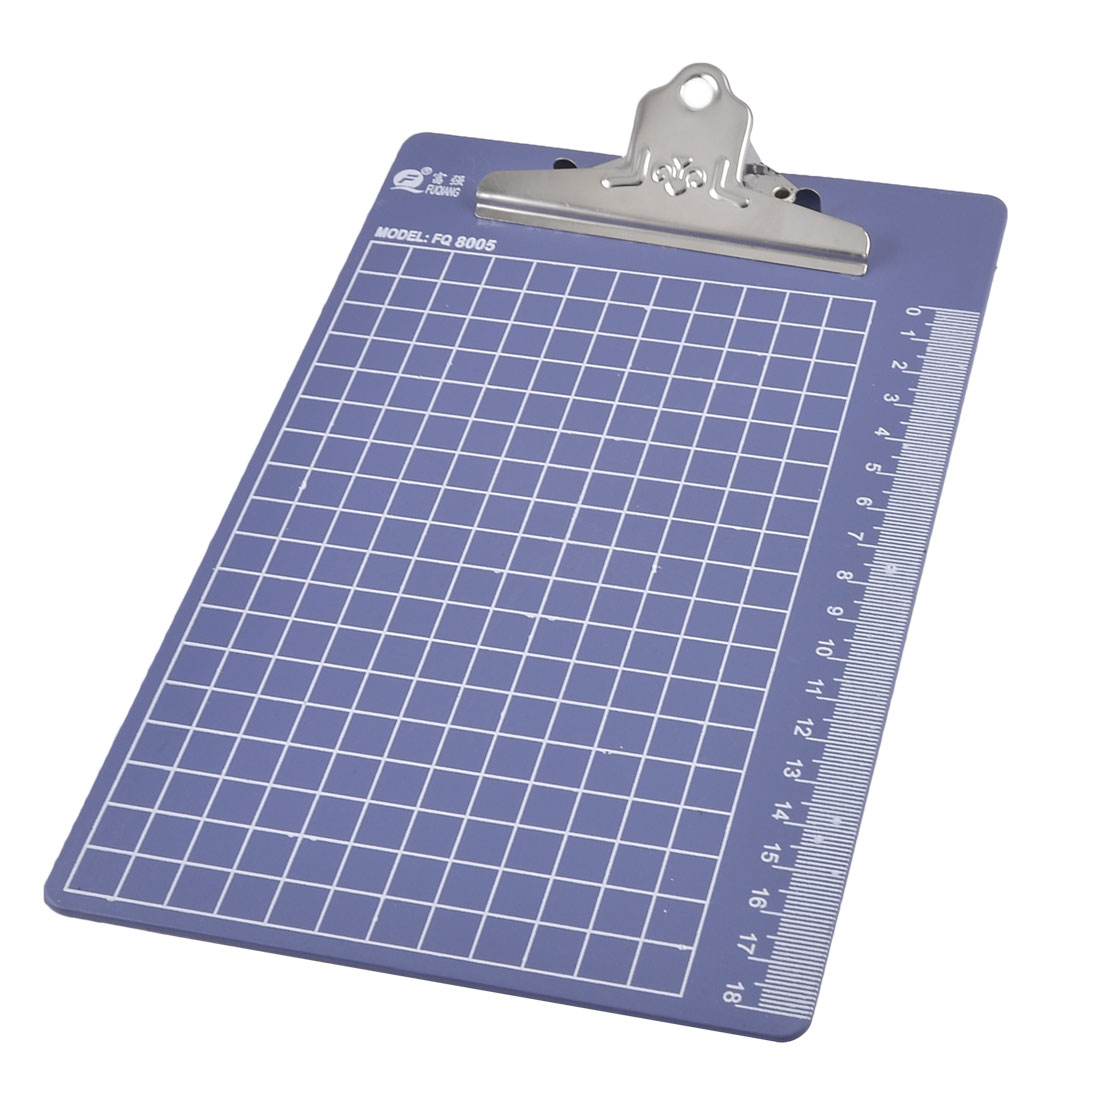 Blue Office A5 Record List Note Paper Clipboard